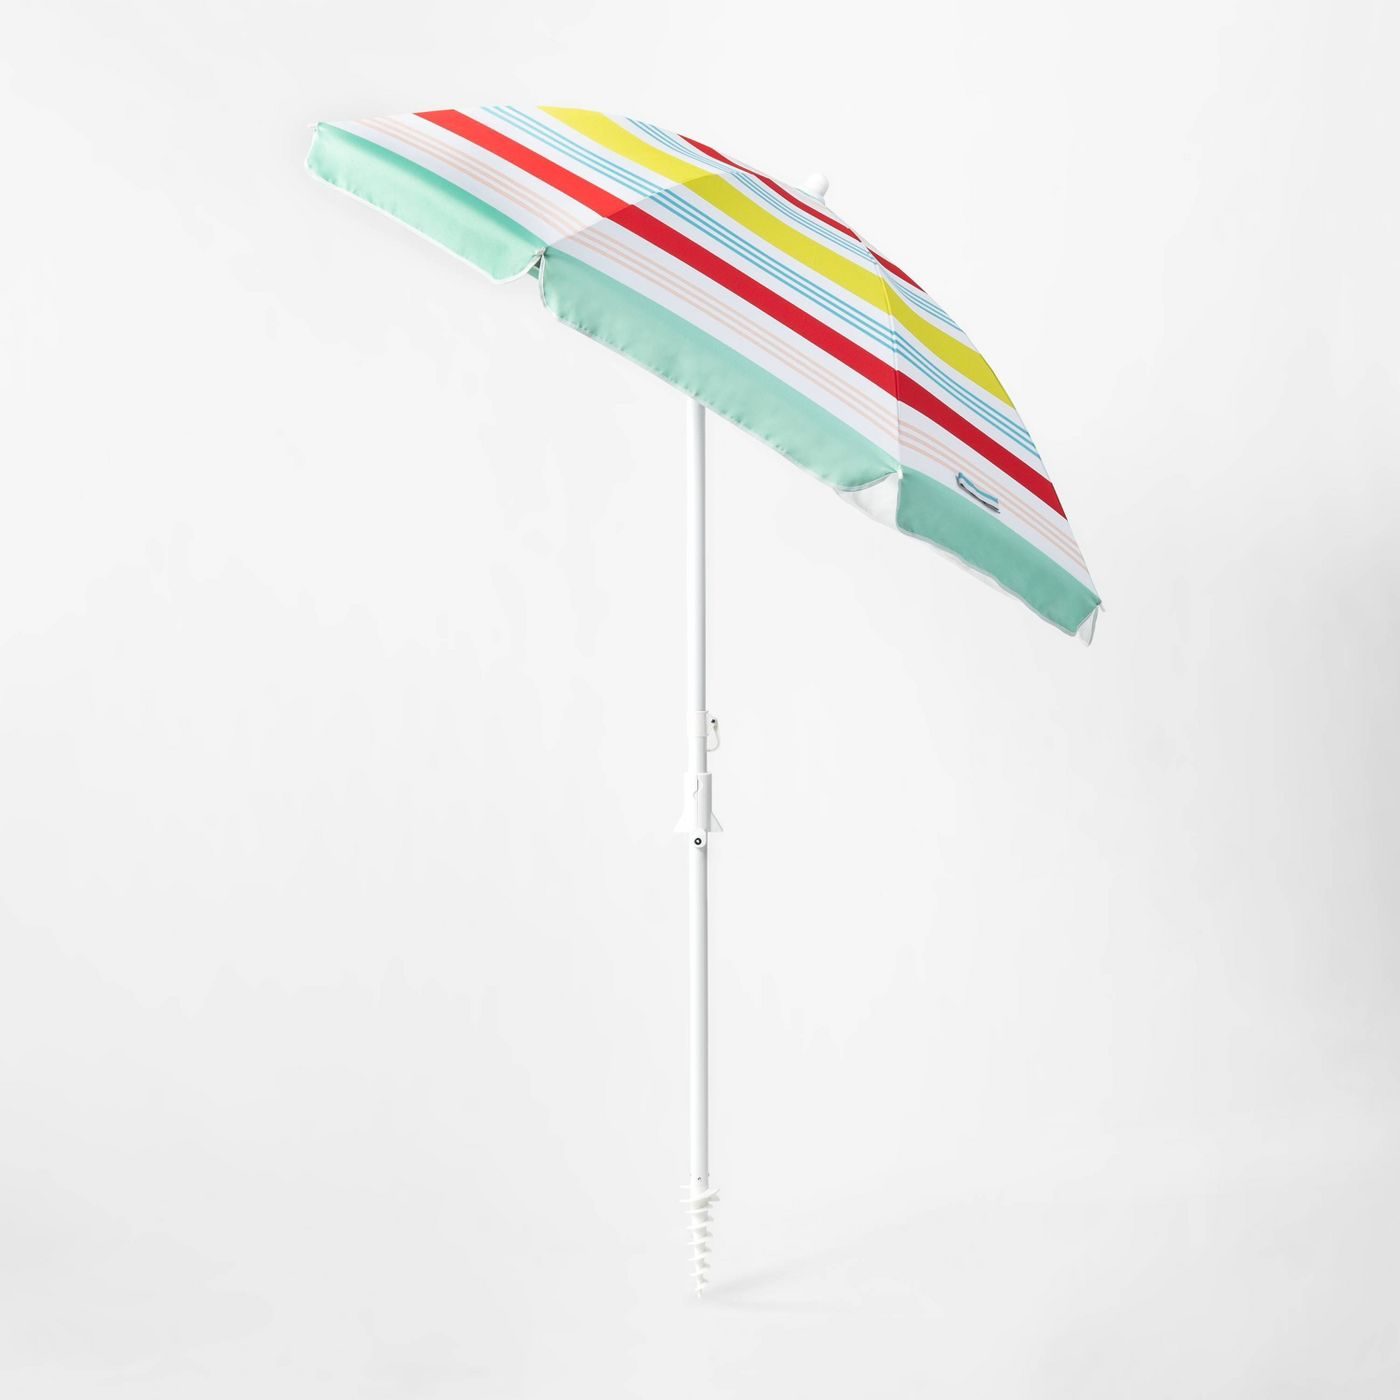 6' Variegated Stripe Beach Umbrella Red/Yellow/Blue - Sun Squad™ - image 2 of 5